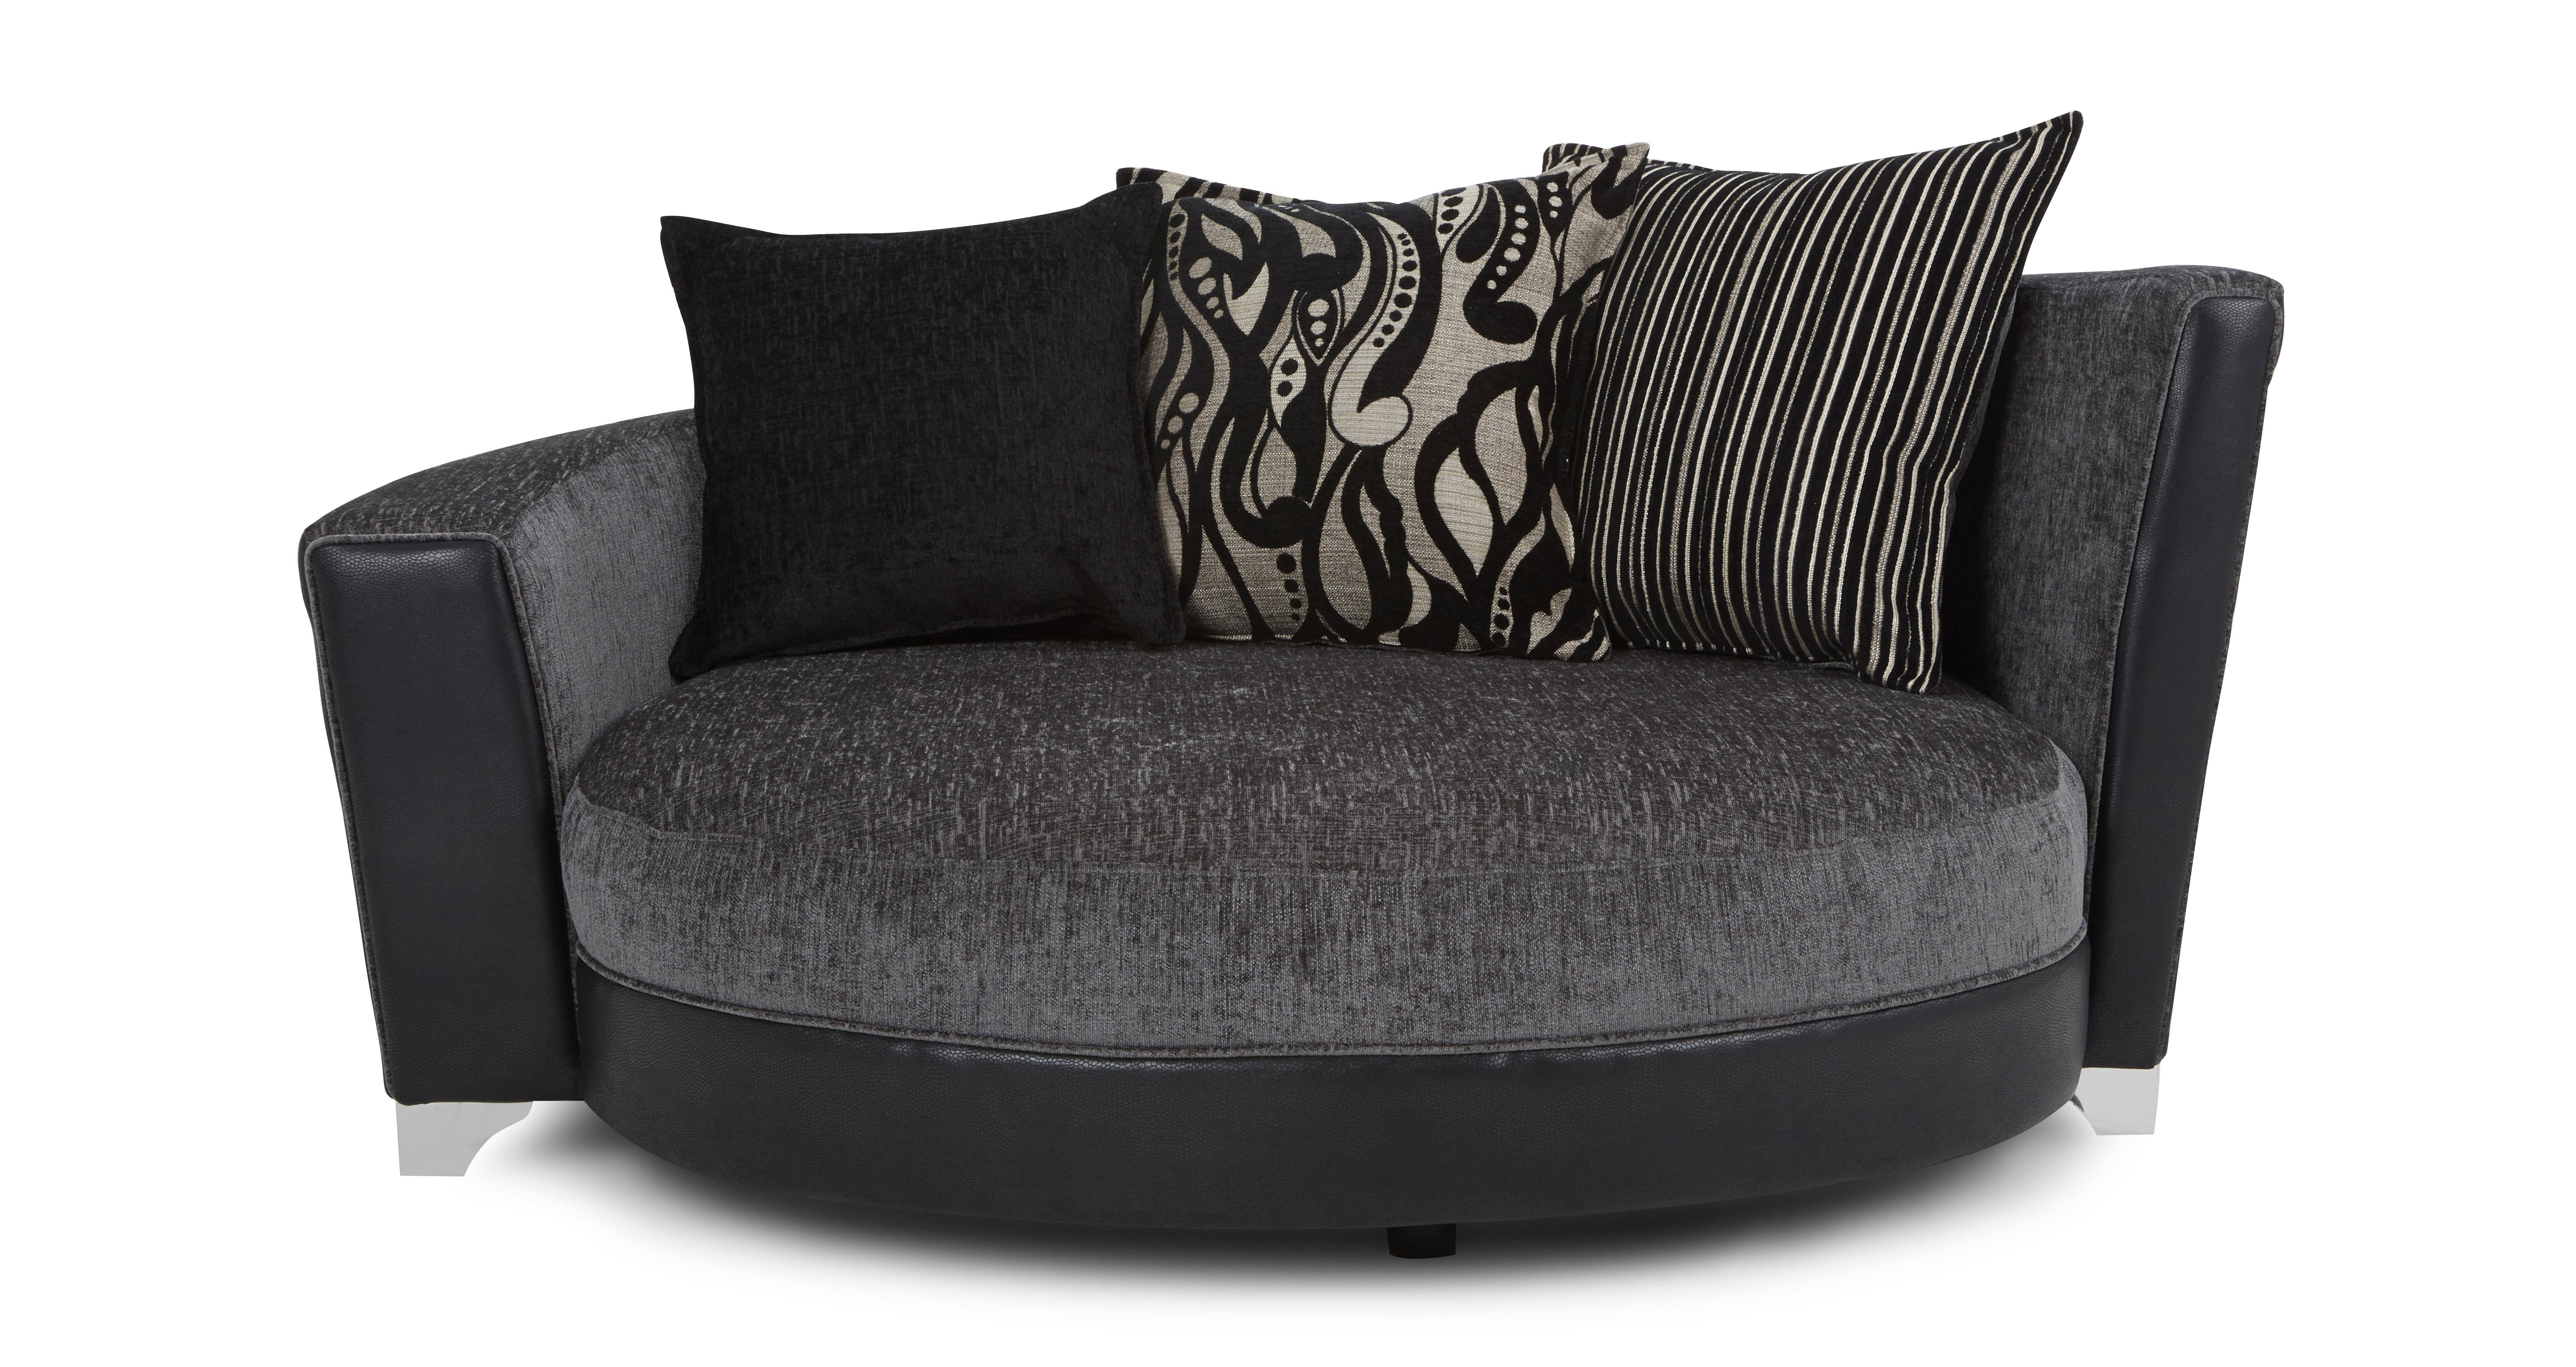 Sofas Center : Formidable Swivel Sofa Chair Picture Concept Regarding Chair Sofas (View 19 of 30)